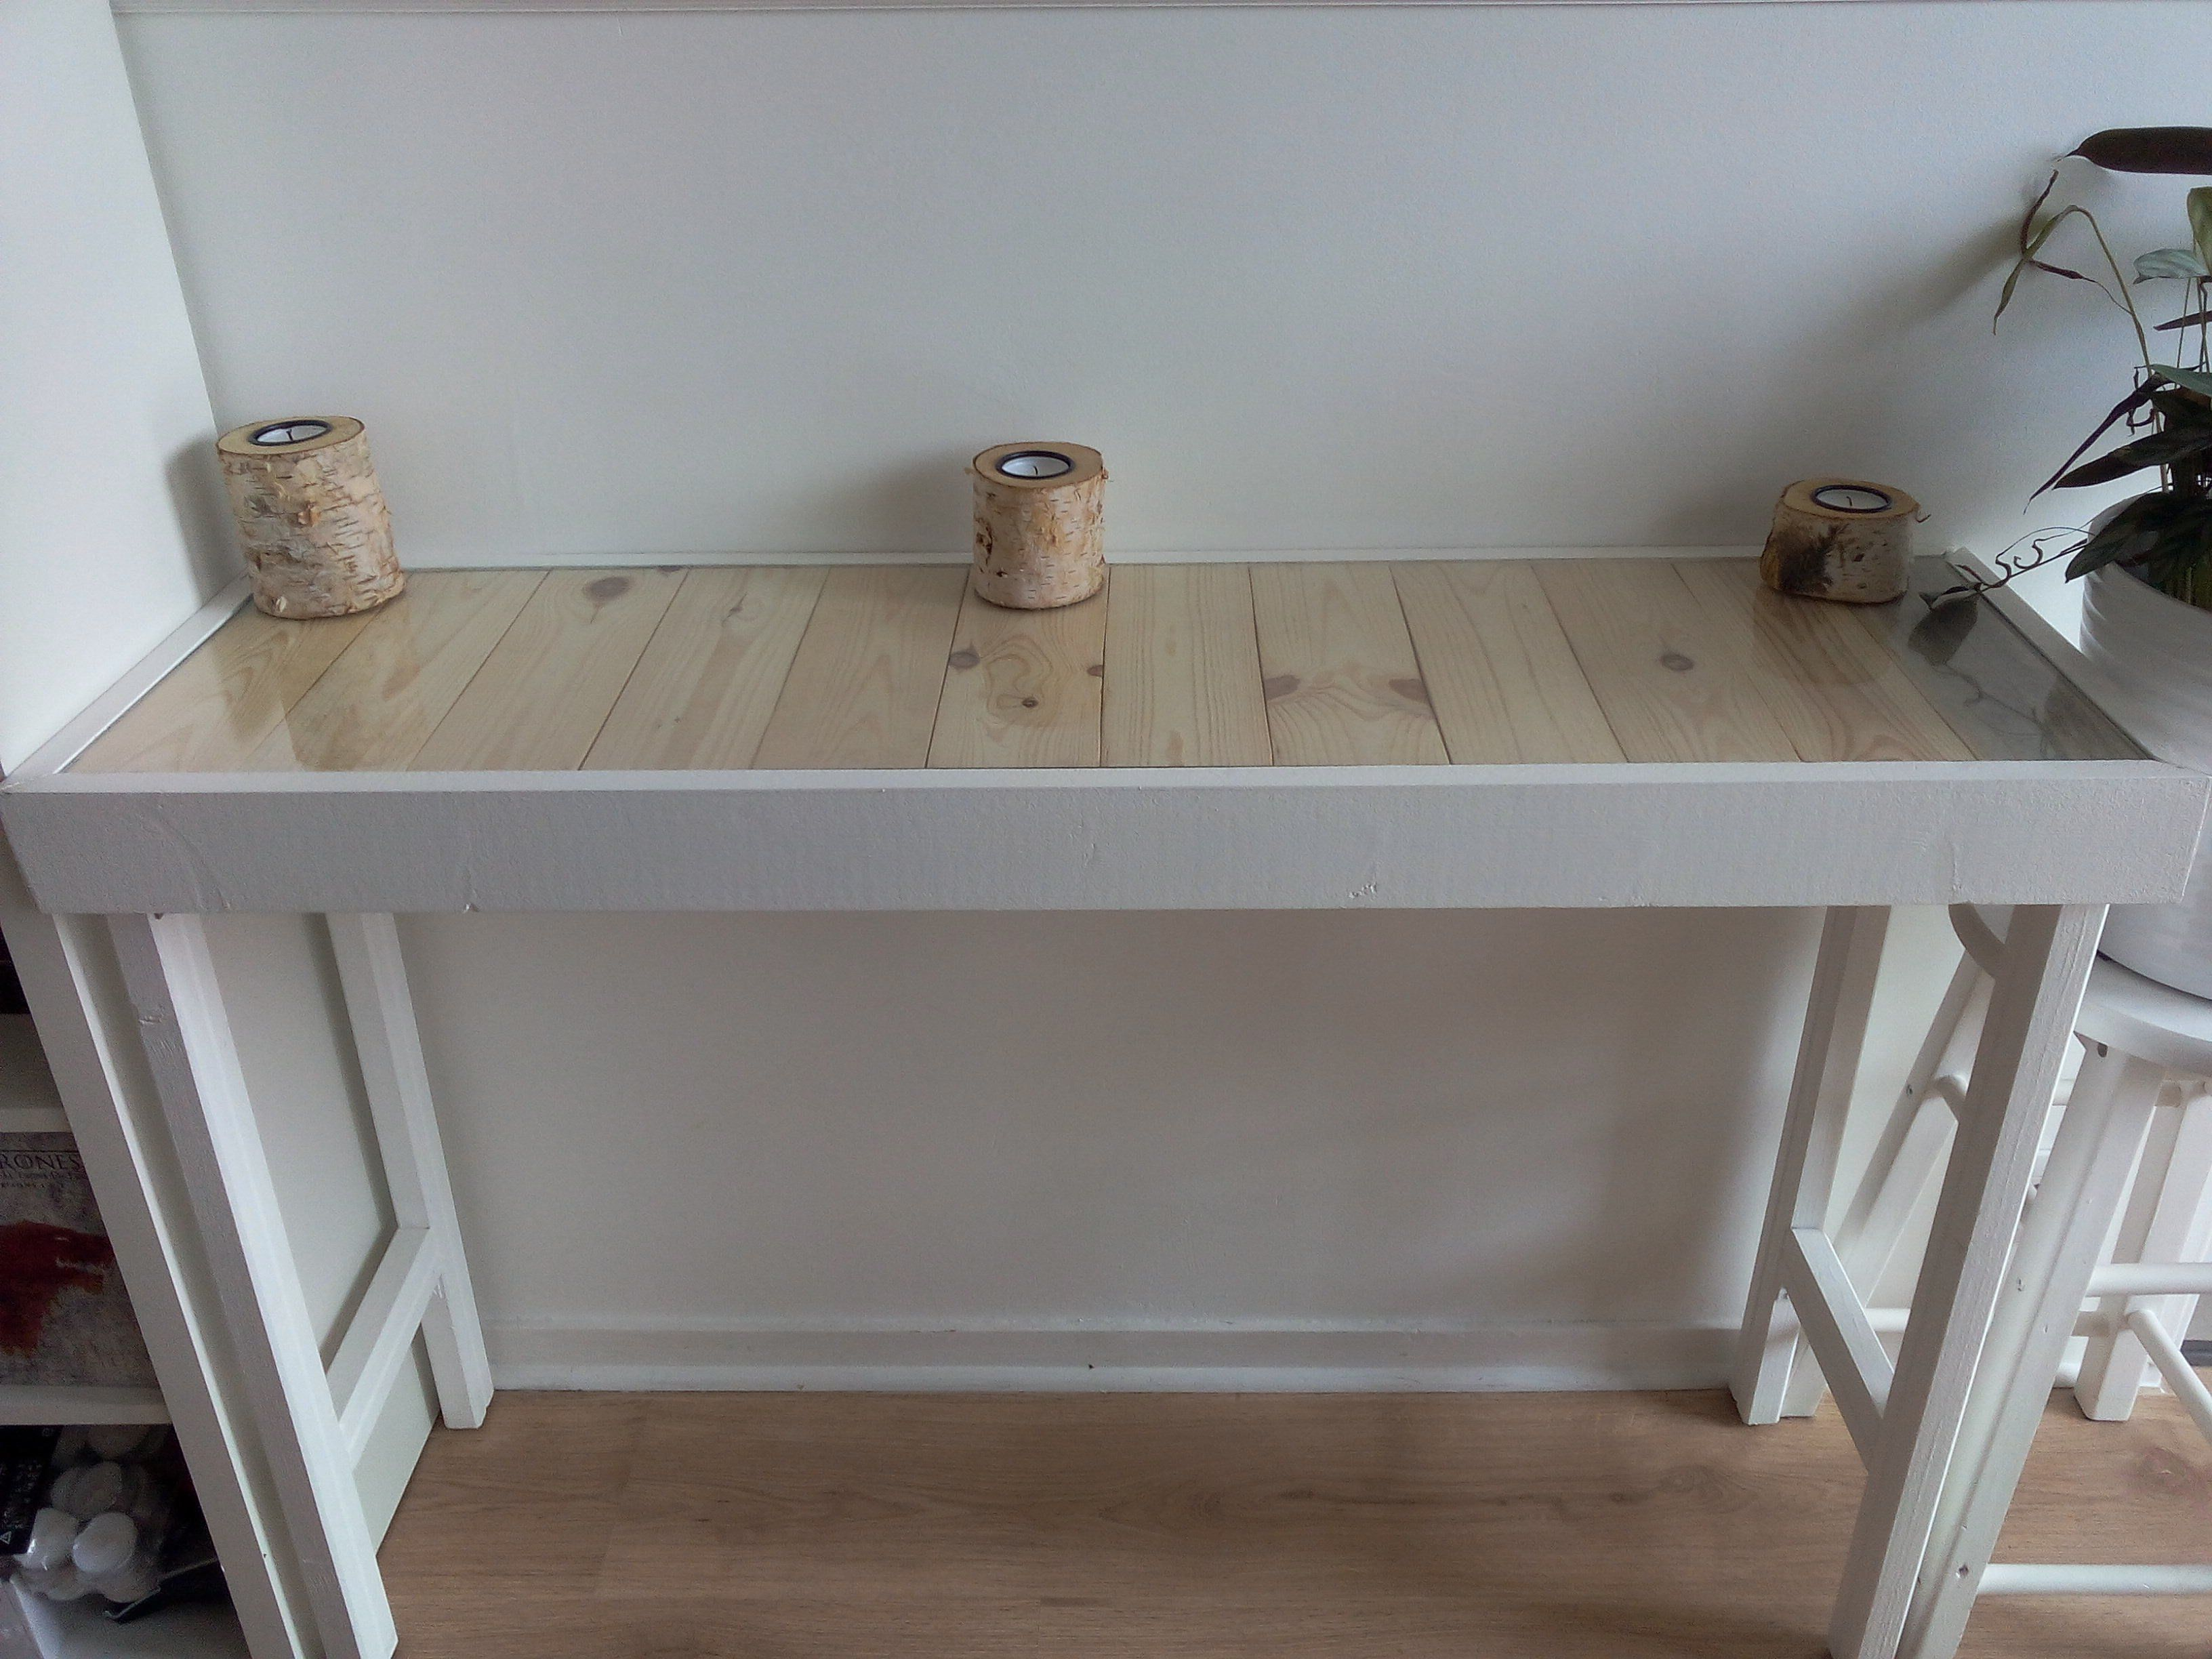 #Console, #Drawer, #Entance, #Hallway, #PalletTable, #RepurposedPallet, #Secret I made this modern entry table adding white color, but keeping the wooden top. I also added a secret drawer! Console de salon blanche, plateau brut, tiroir secret.